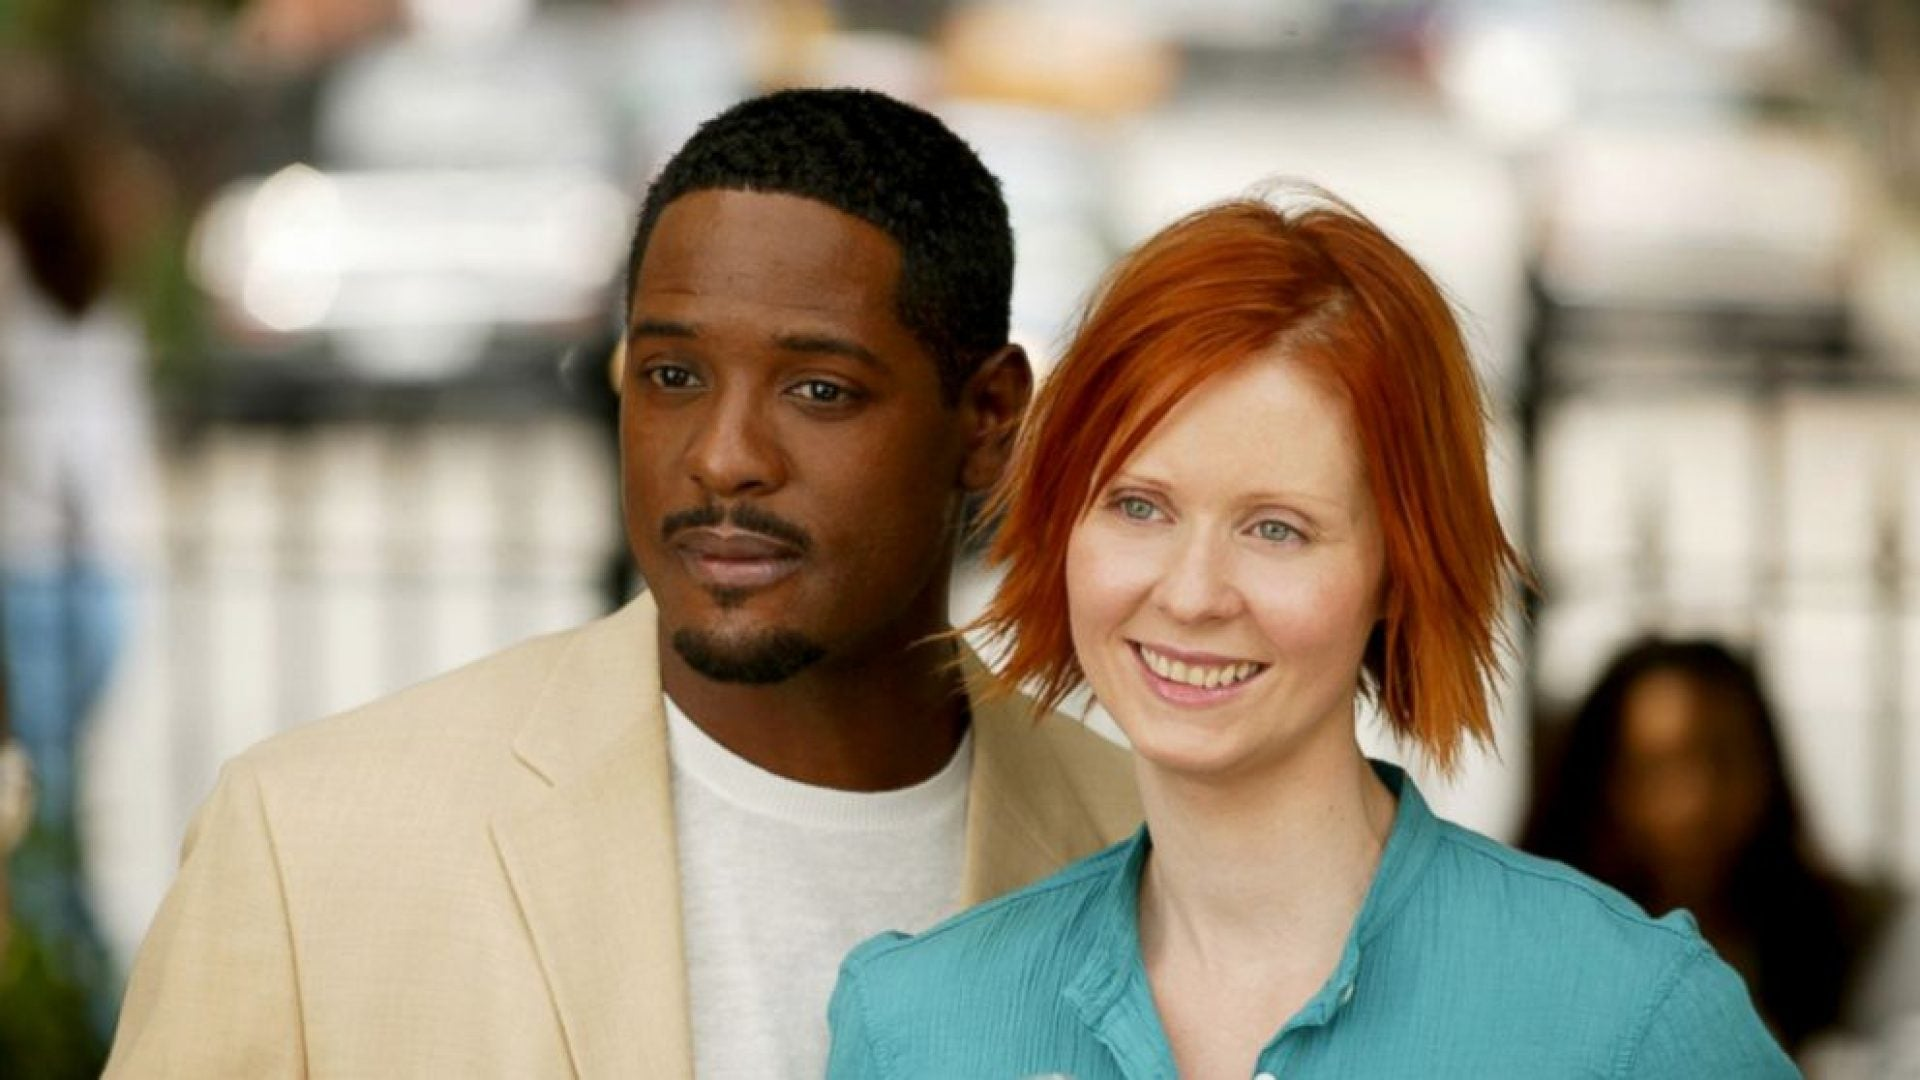 Blair Underwood Initially Passed On 'Sex And The City' Because Role Exploited Black Men